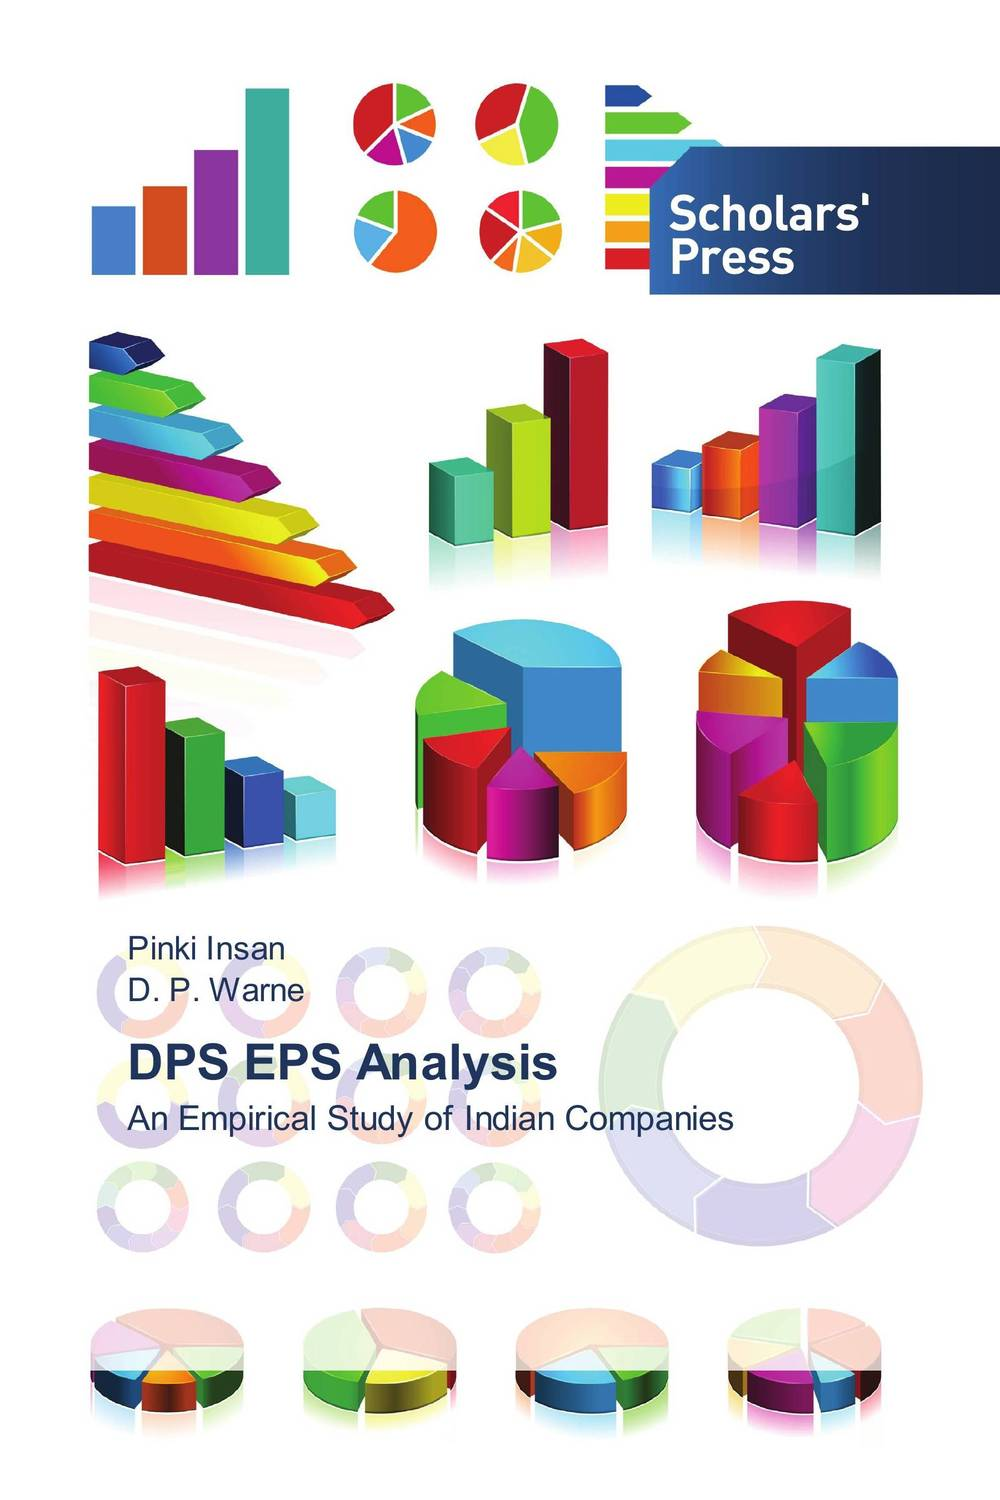 DPS EPS Analysis sujata kapoor dividend policy and its impact on shareholders wealth